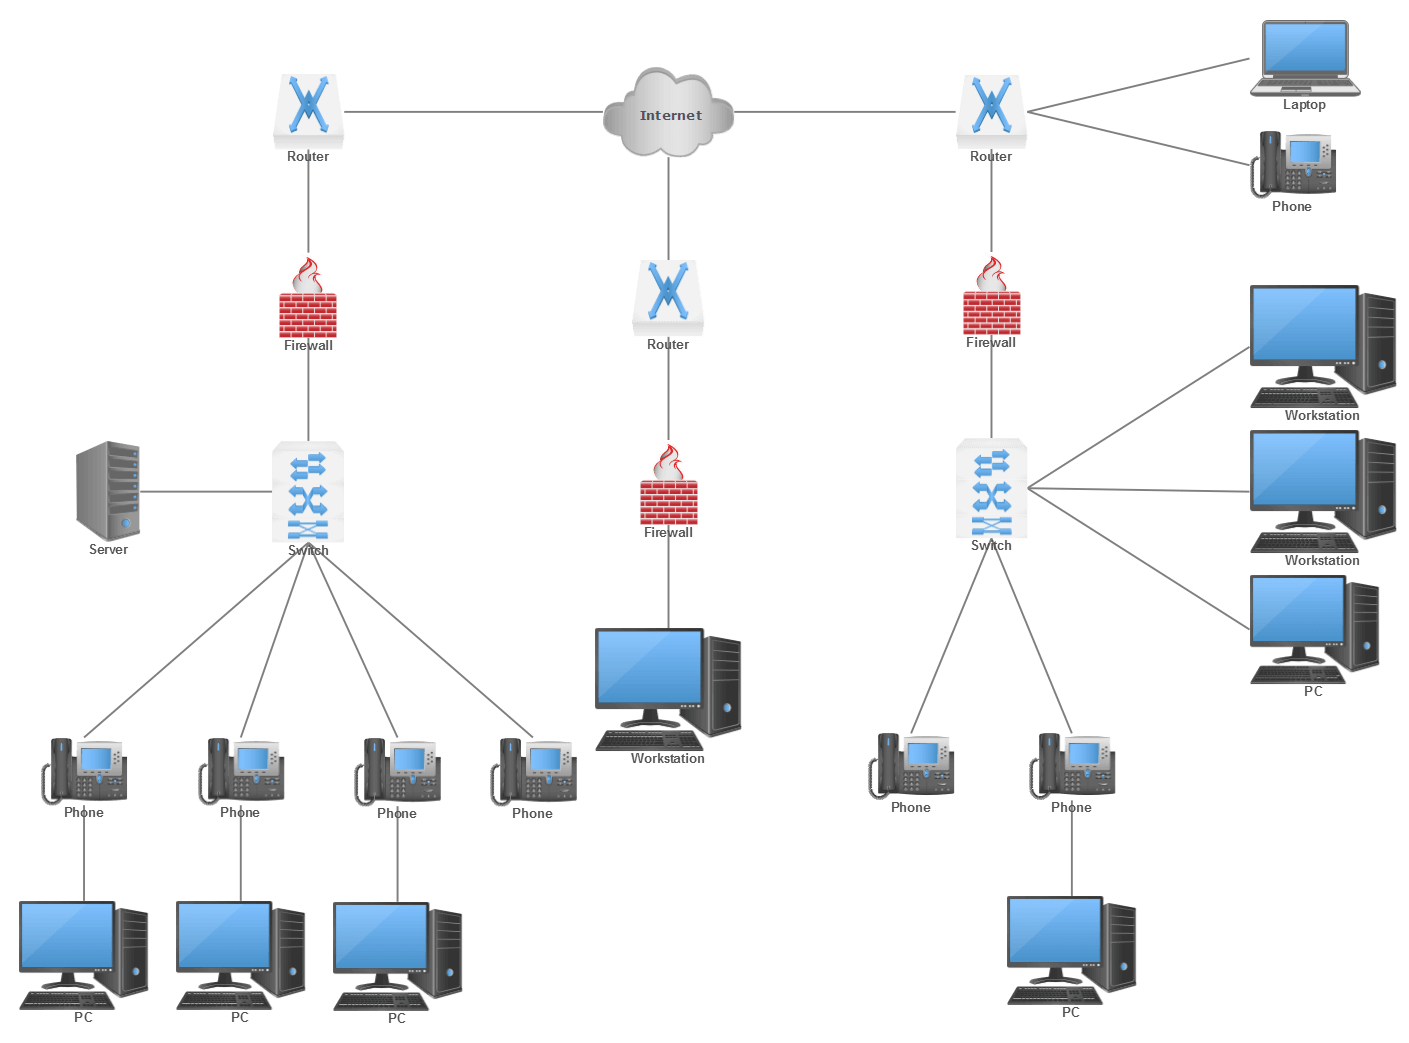 How To Make Network Diagram - Wiring Diagram All